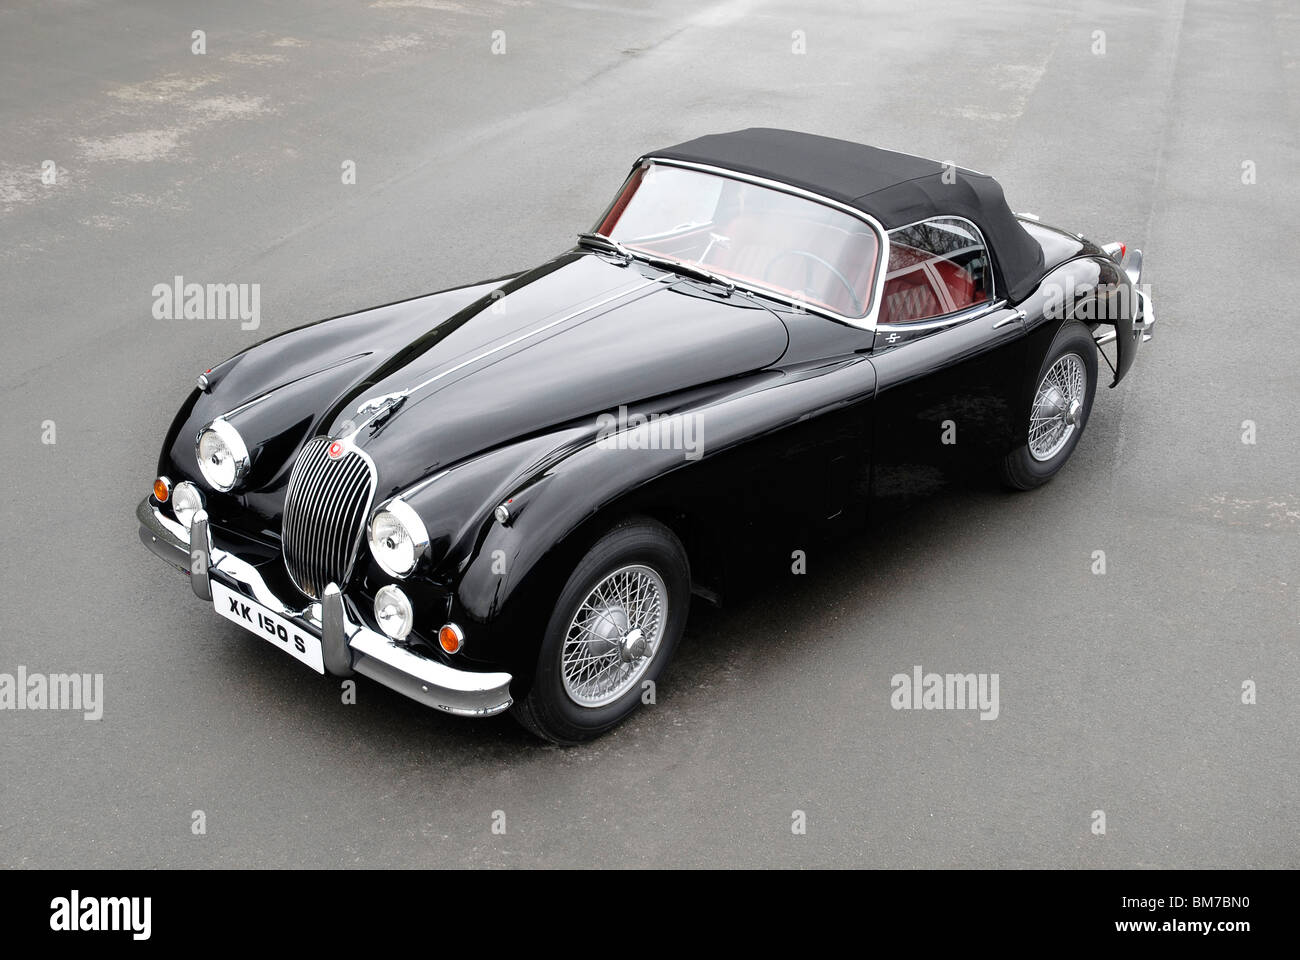 sale news restaur motor hemmings classifieds jaguar e xk cars for fhc